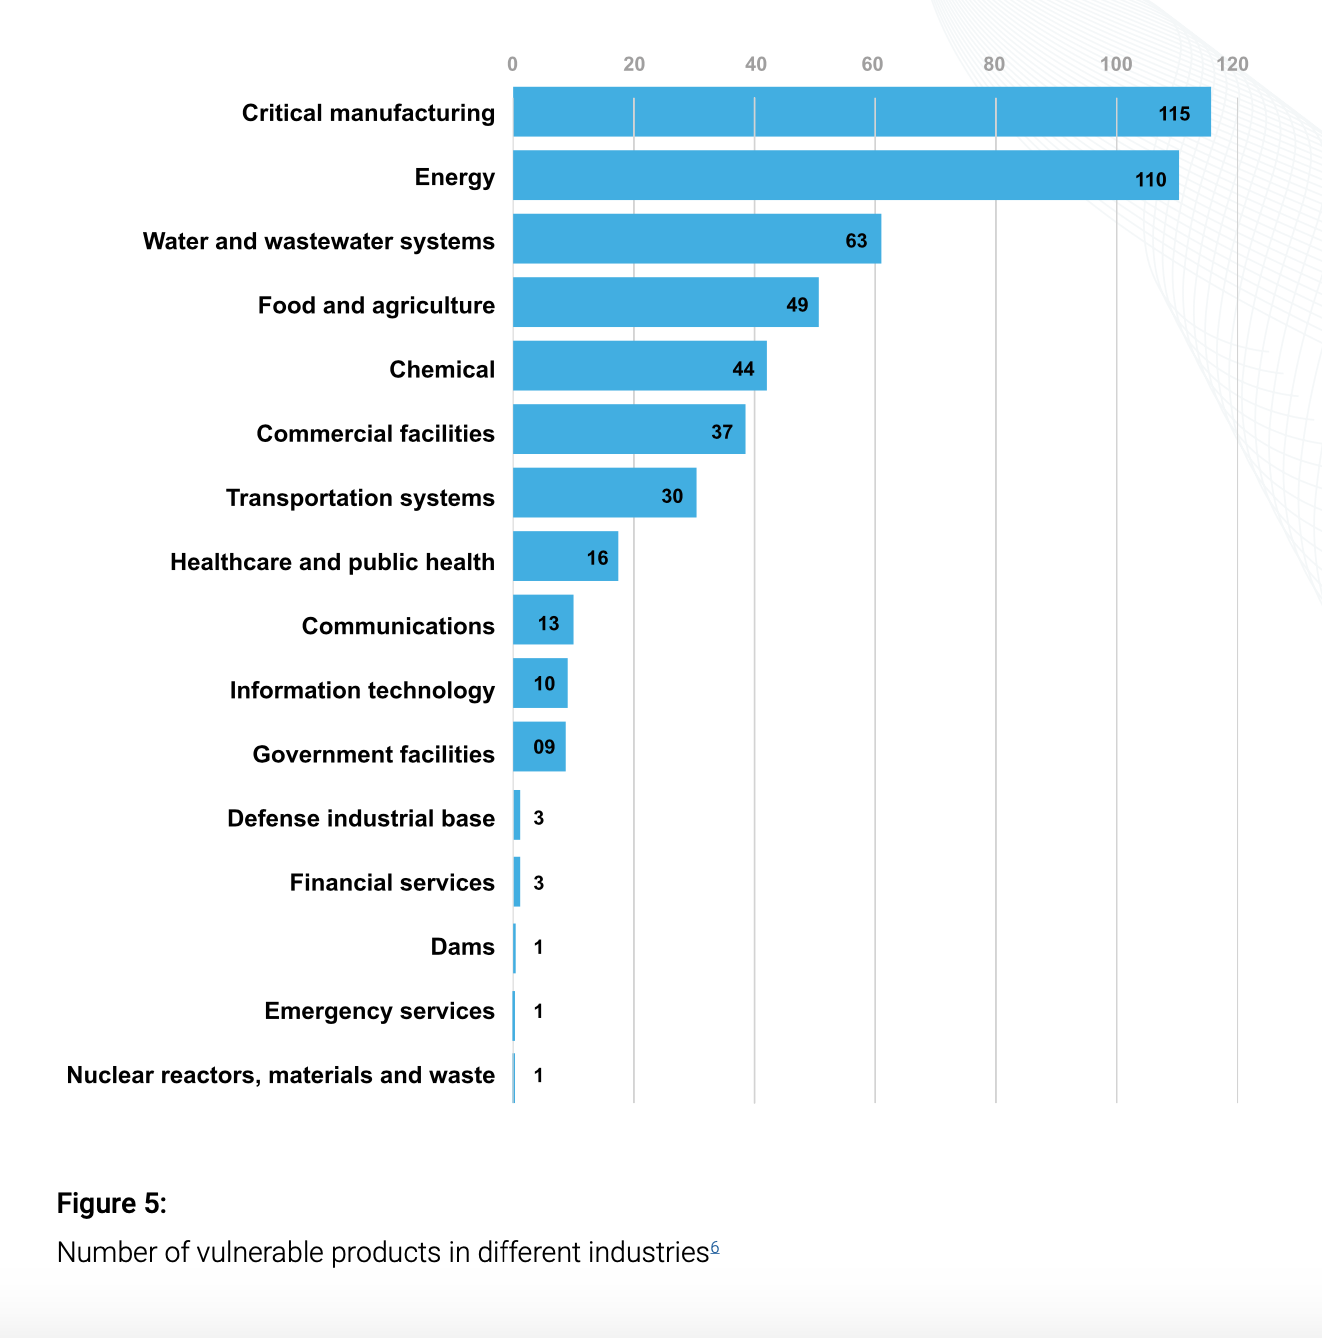 Cybersecurity-Vulnerable-Products-By-Industry